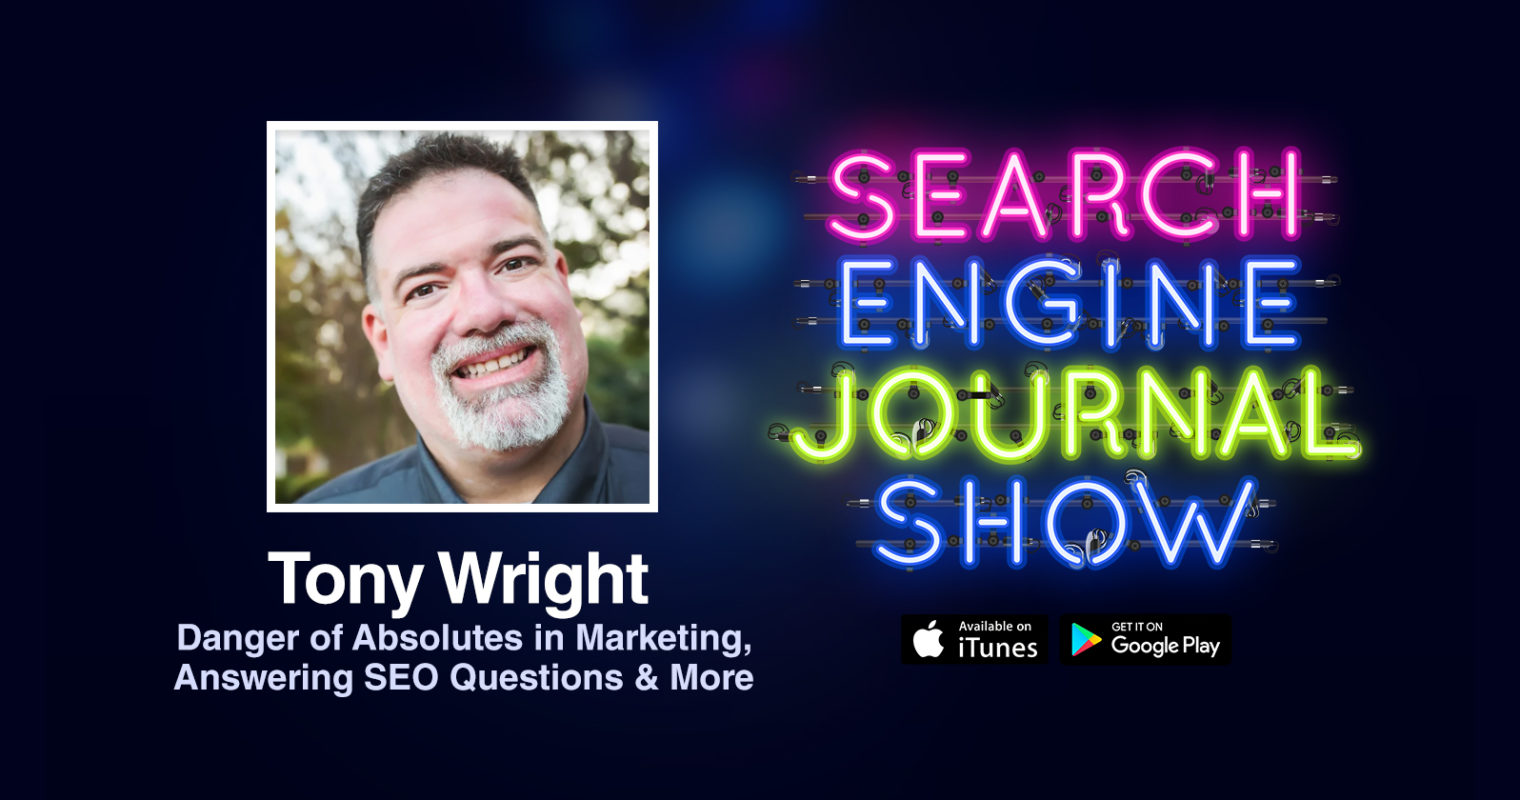 Tony Wright on the Danger of Absolutes in Marketing, Answering SEO Questions & More [PODCAST]